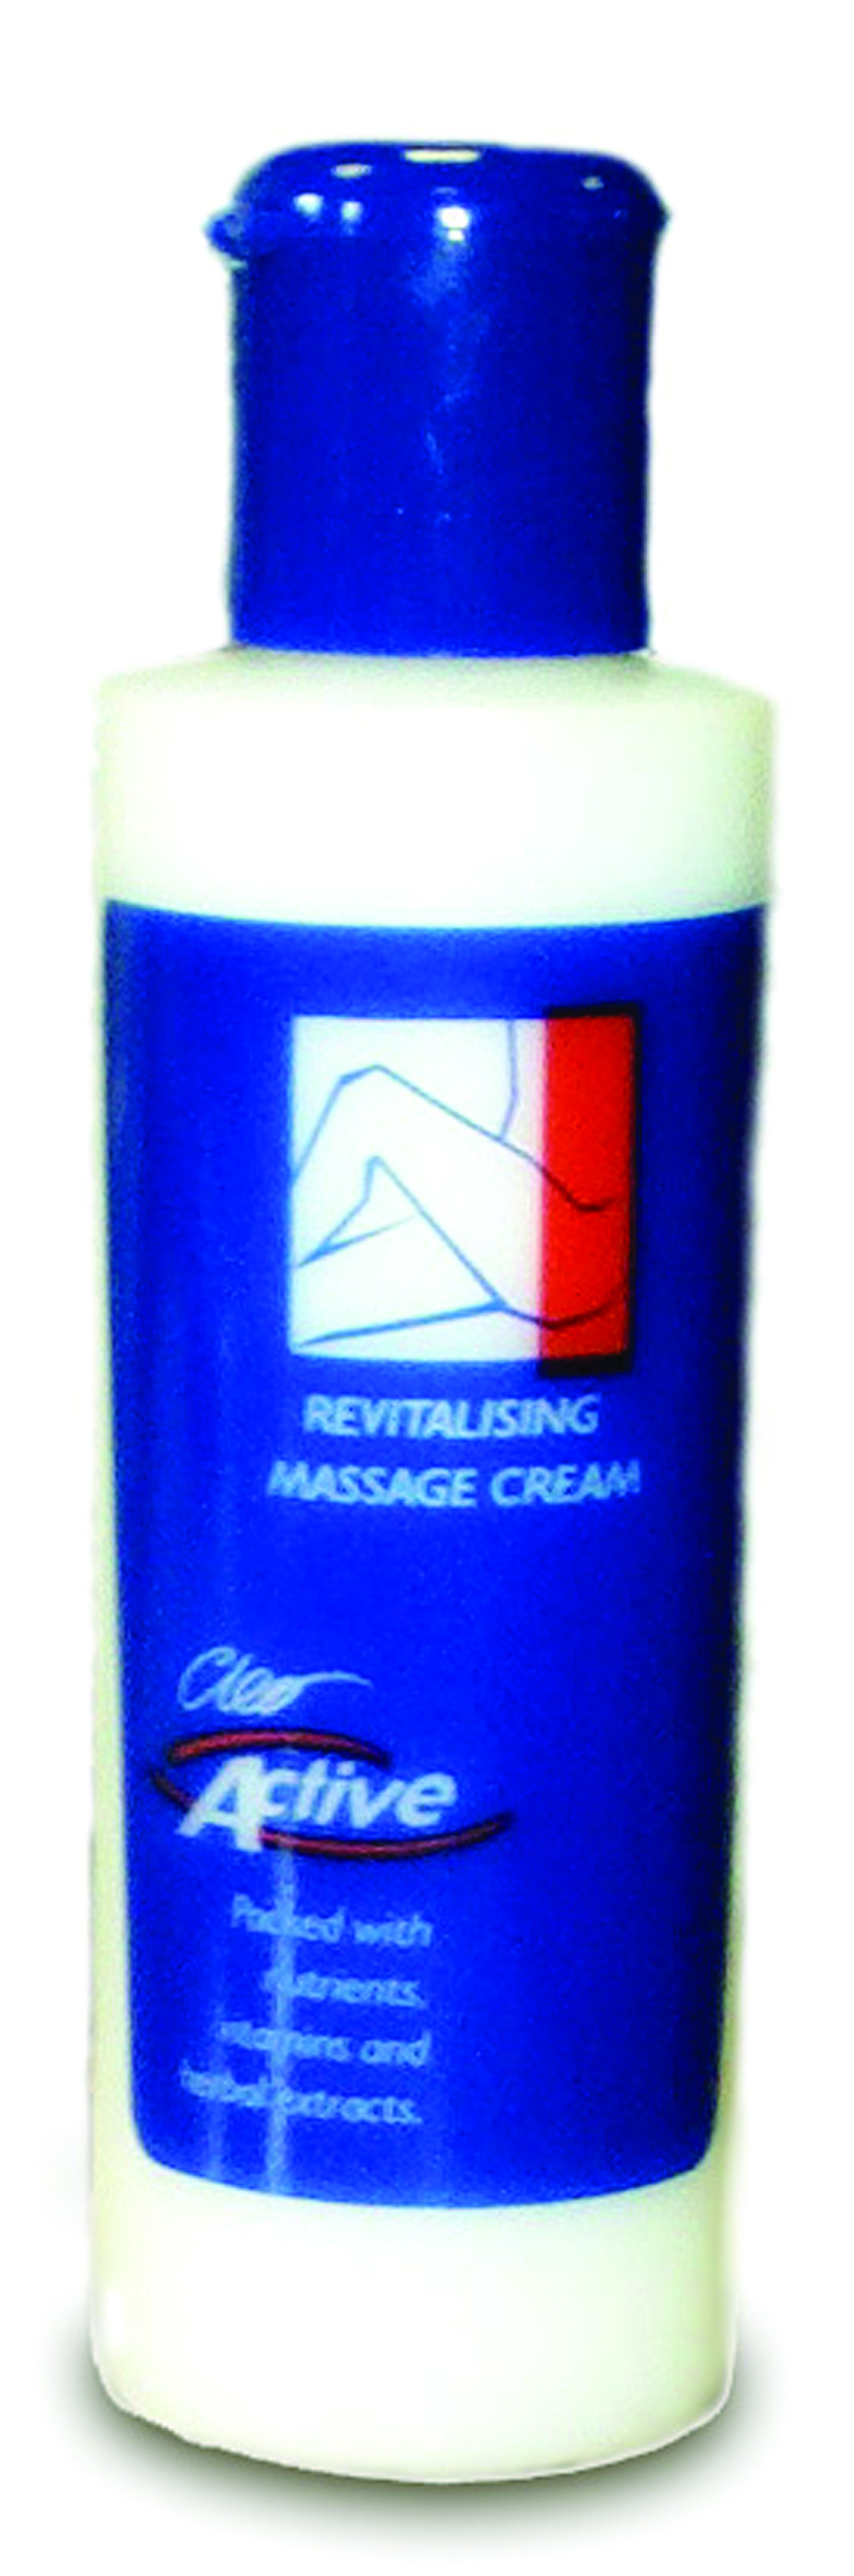 active-cream-bottle.jpg